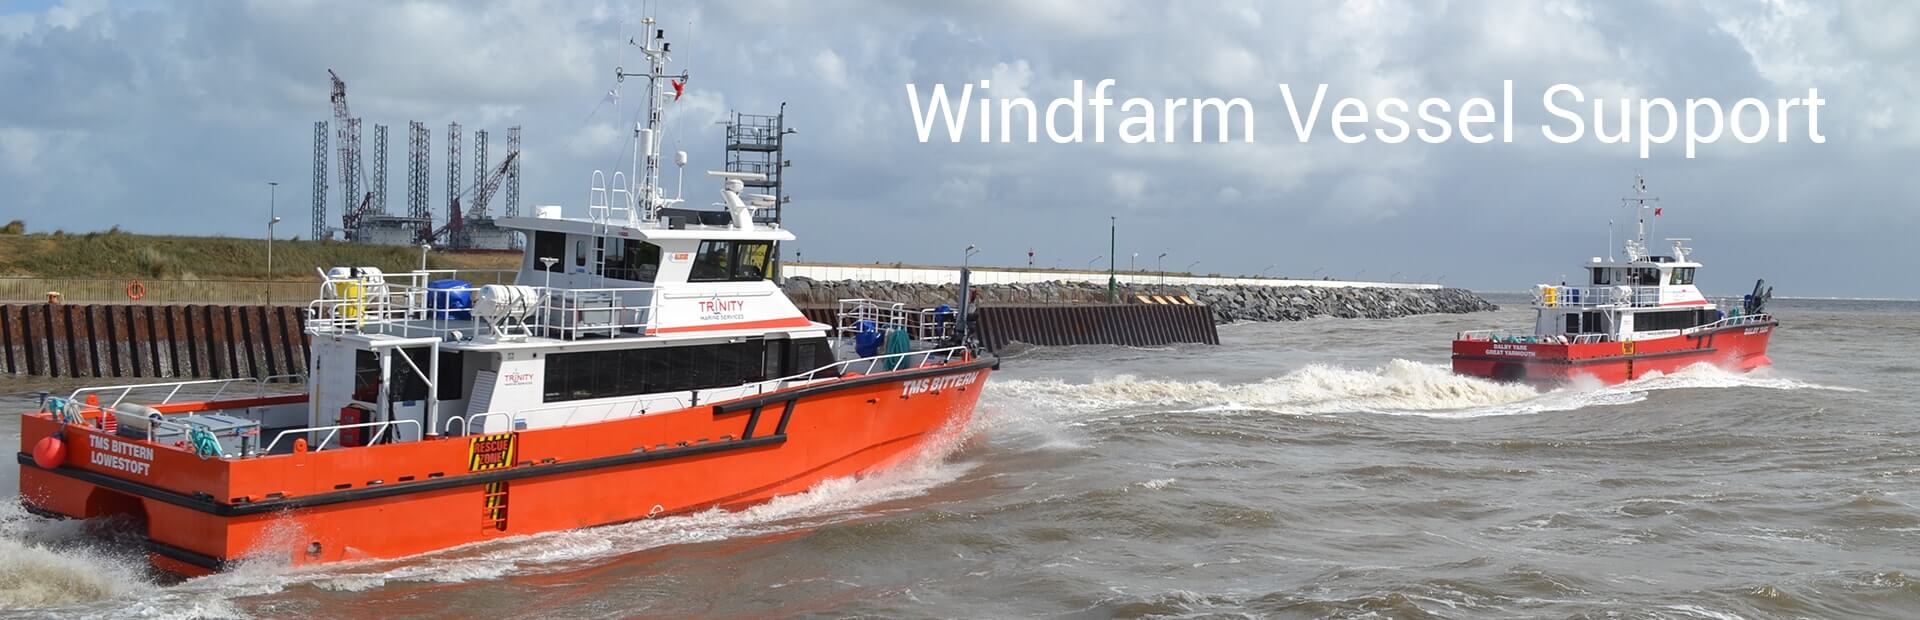 Windfarm Vessel Support